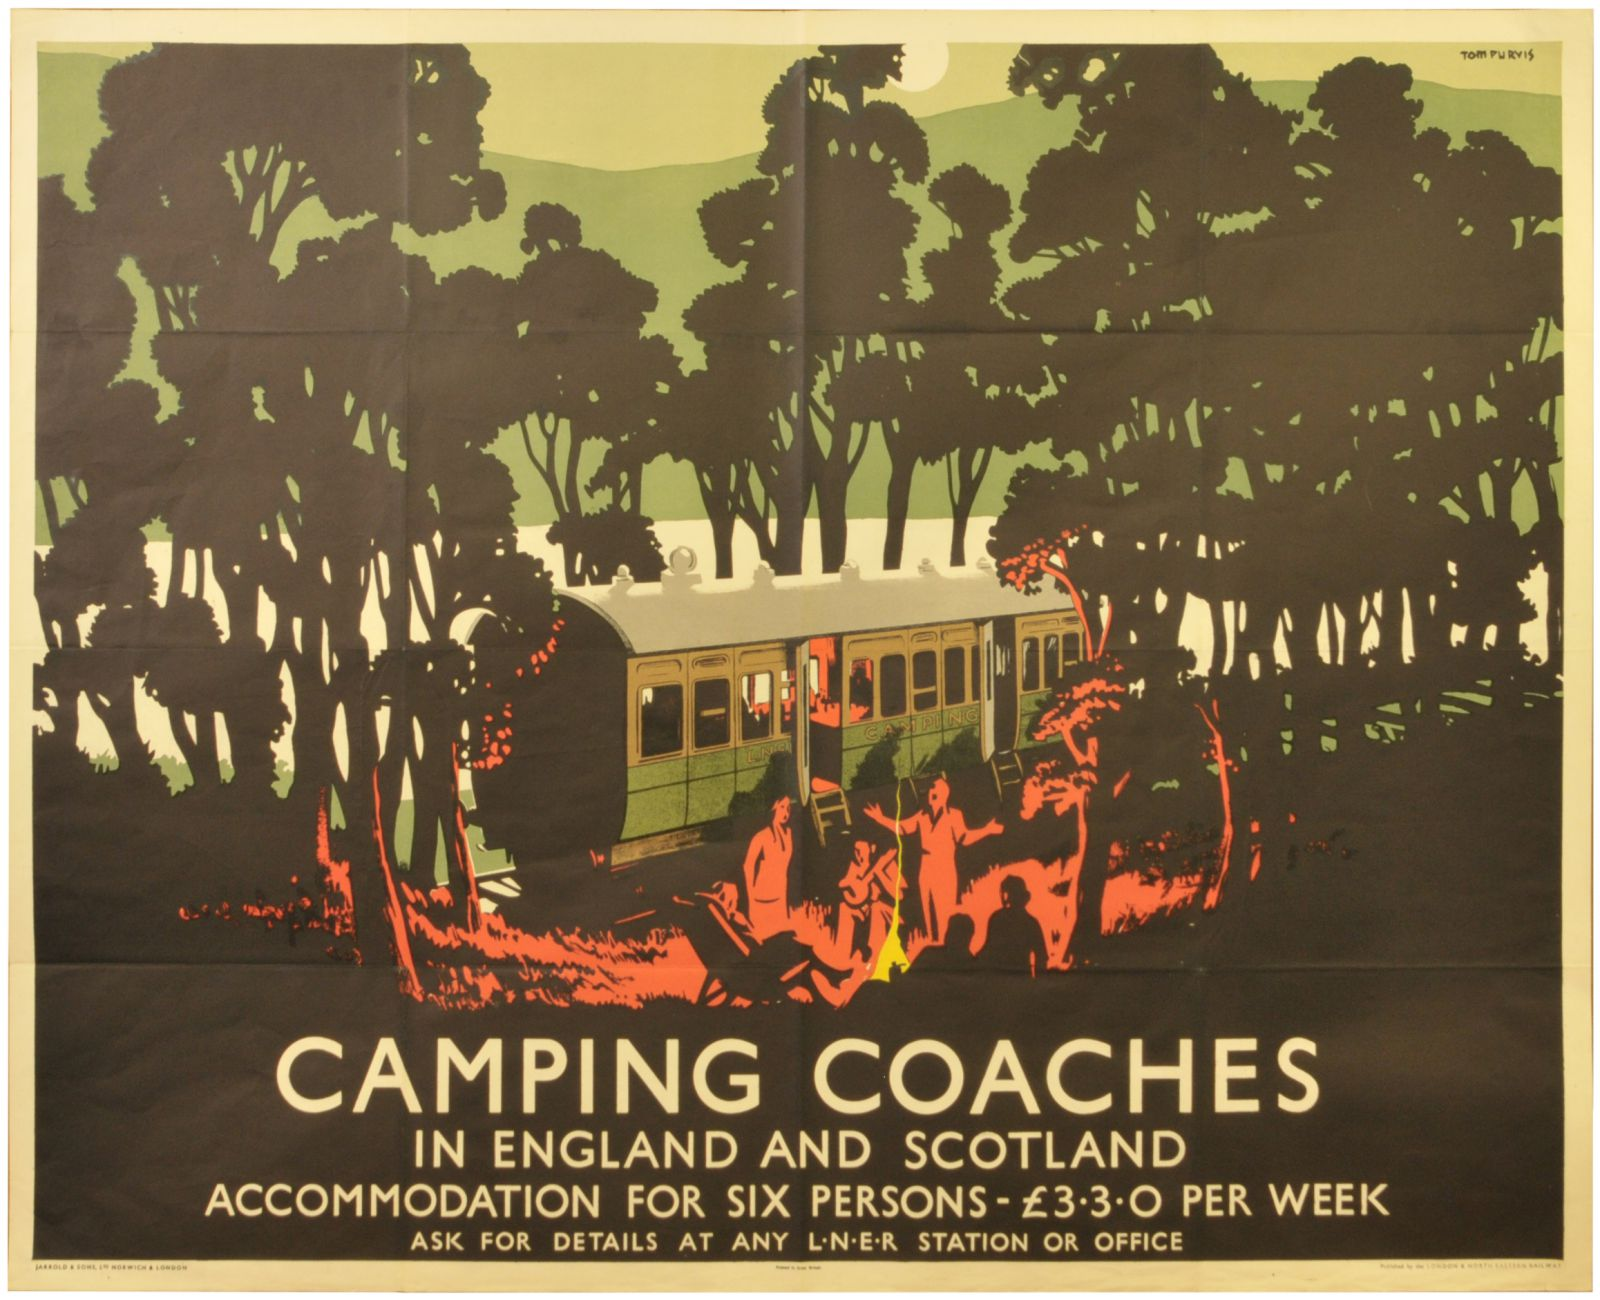 Lot 19 - Railway Posters, Camping Coaches, Purvis, LNER: An LNER quad royal poster, CAMPING COACHES, by Tom